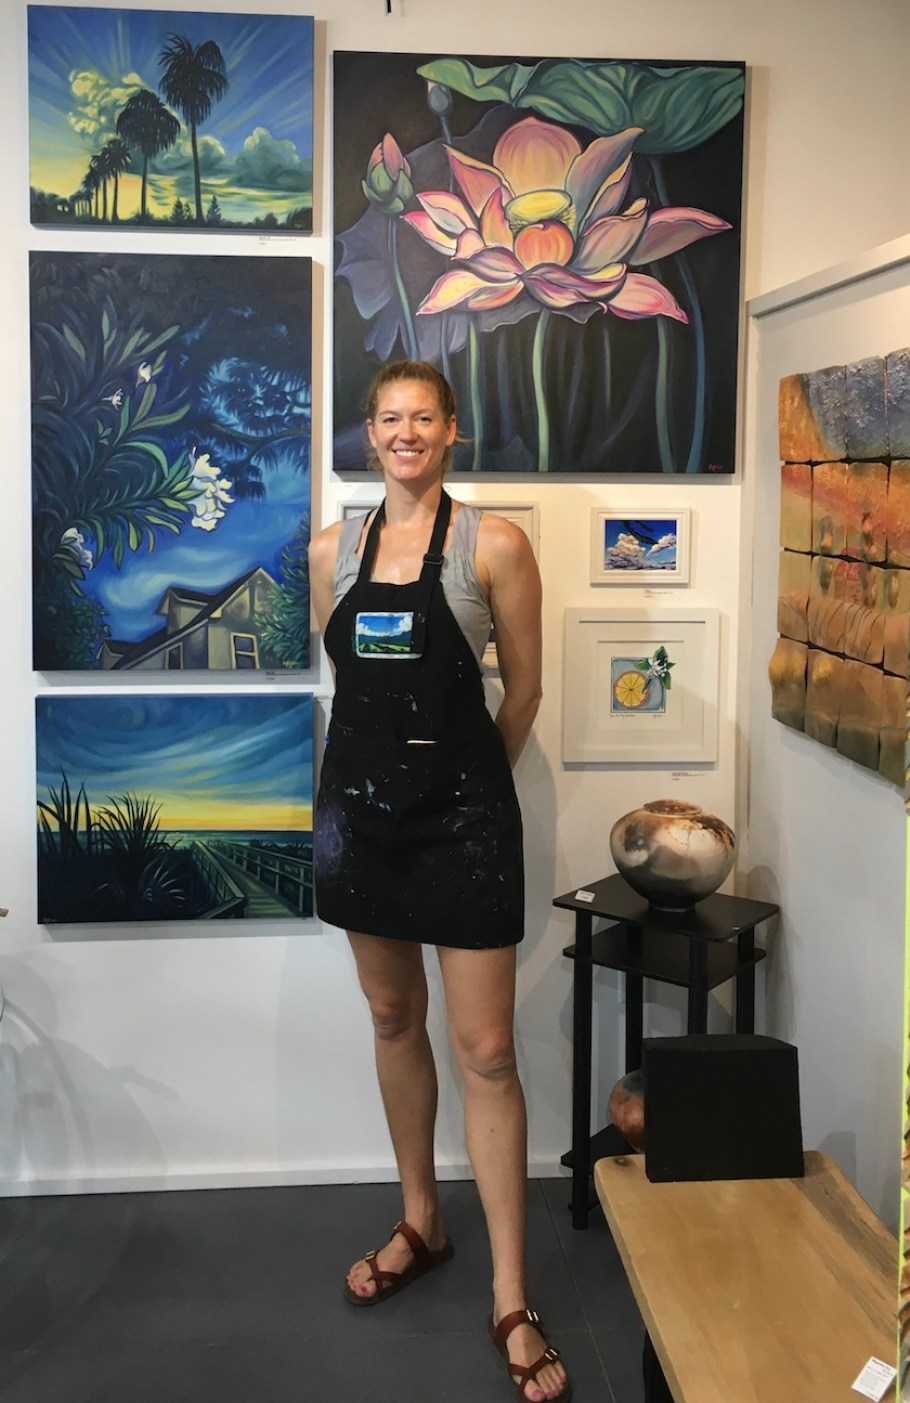 A woman in an apron stands in an art gallery surrounded by her work, smiling at the camera.